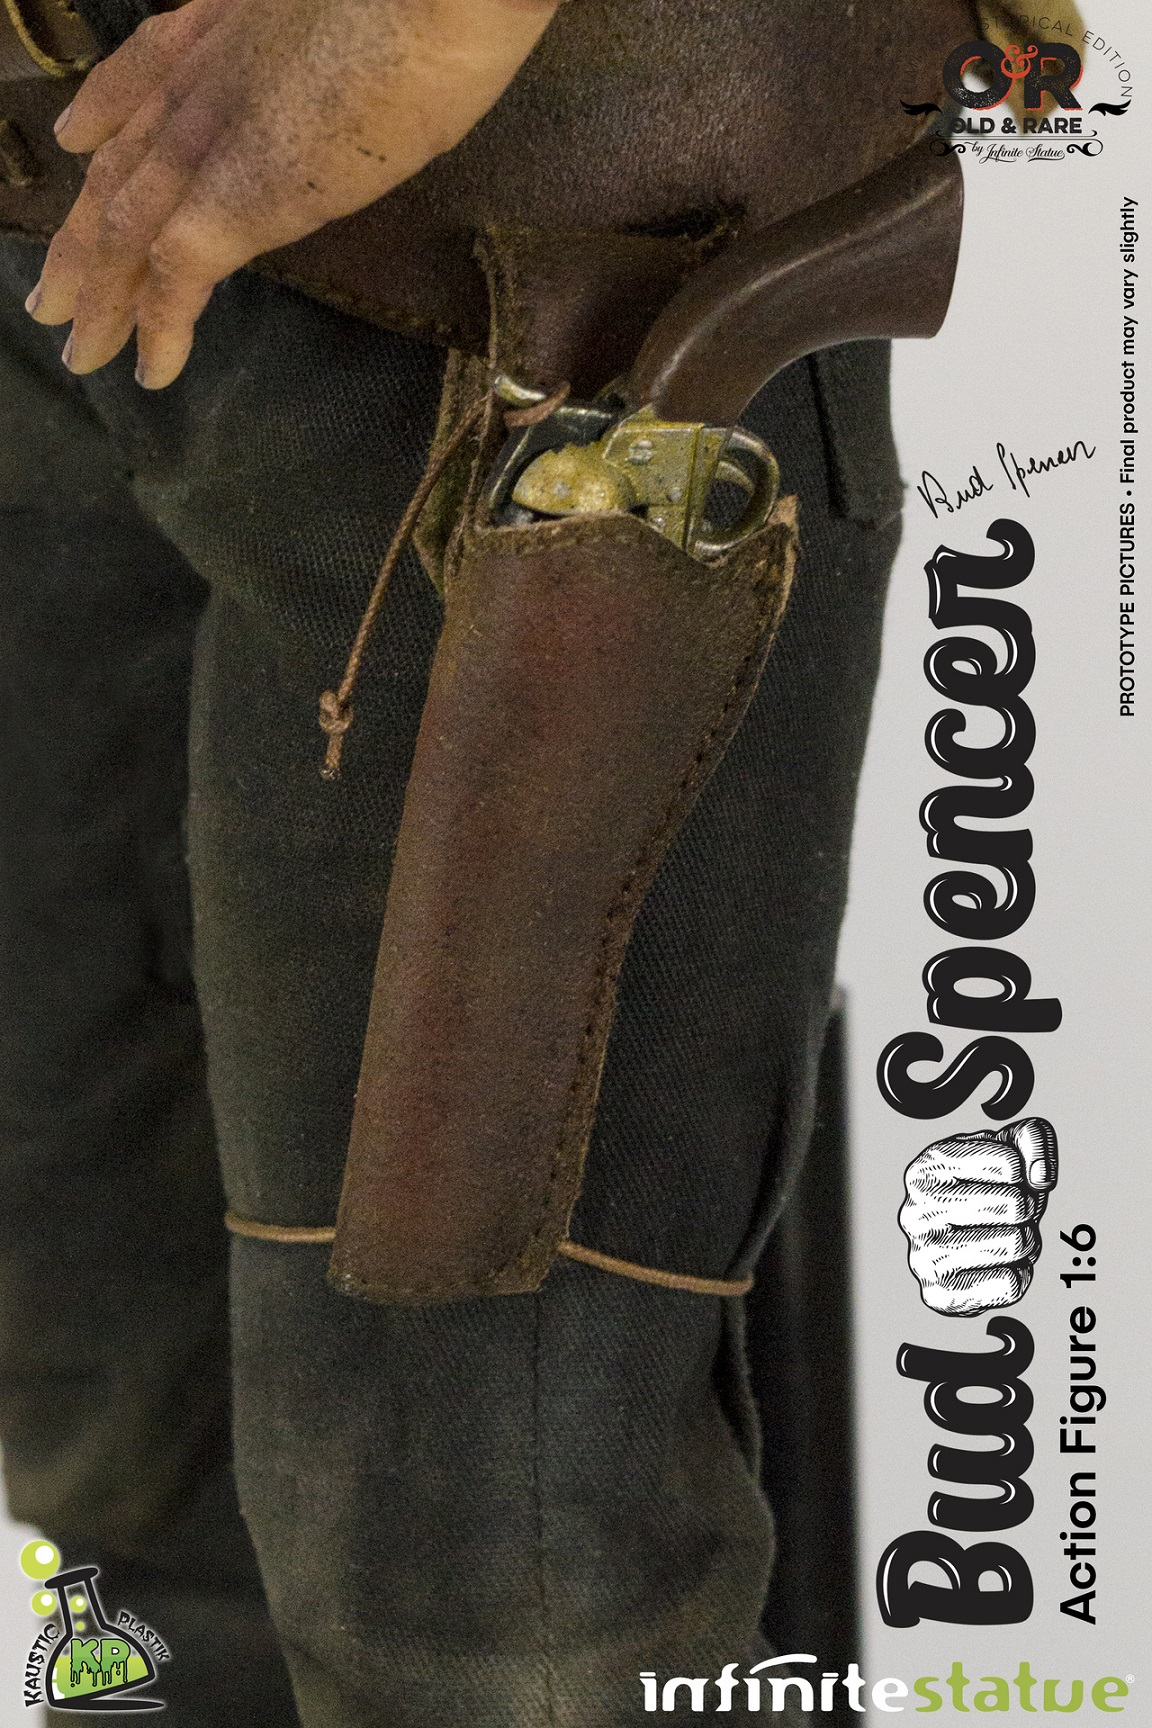 Link a bud_spencer_infinite_statue_action_figure-15